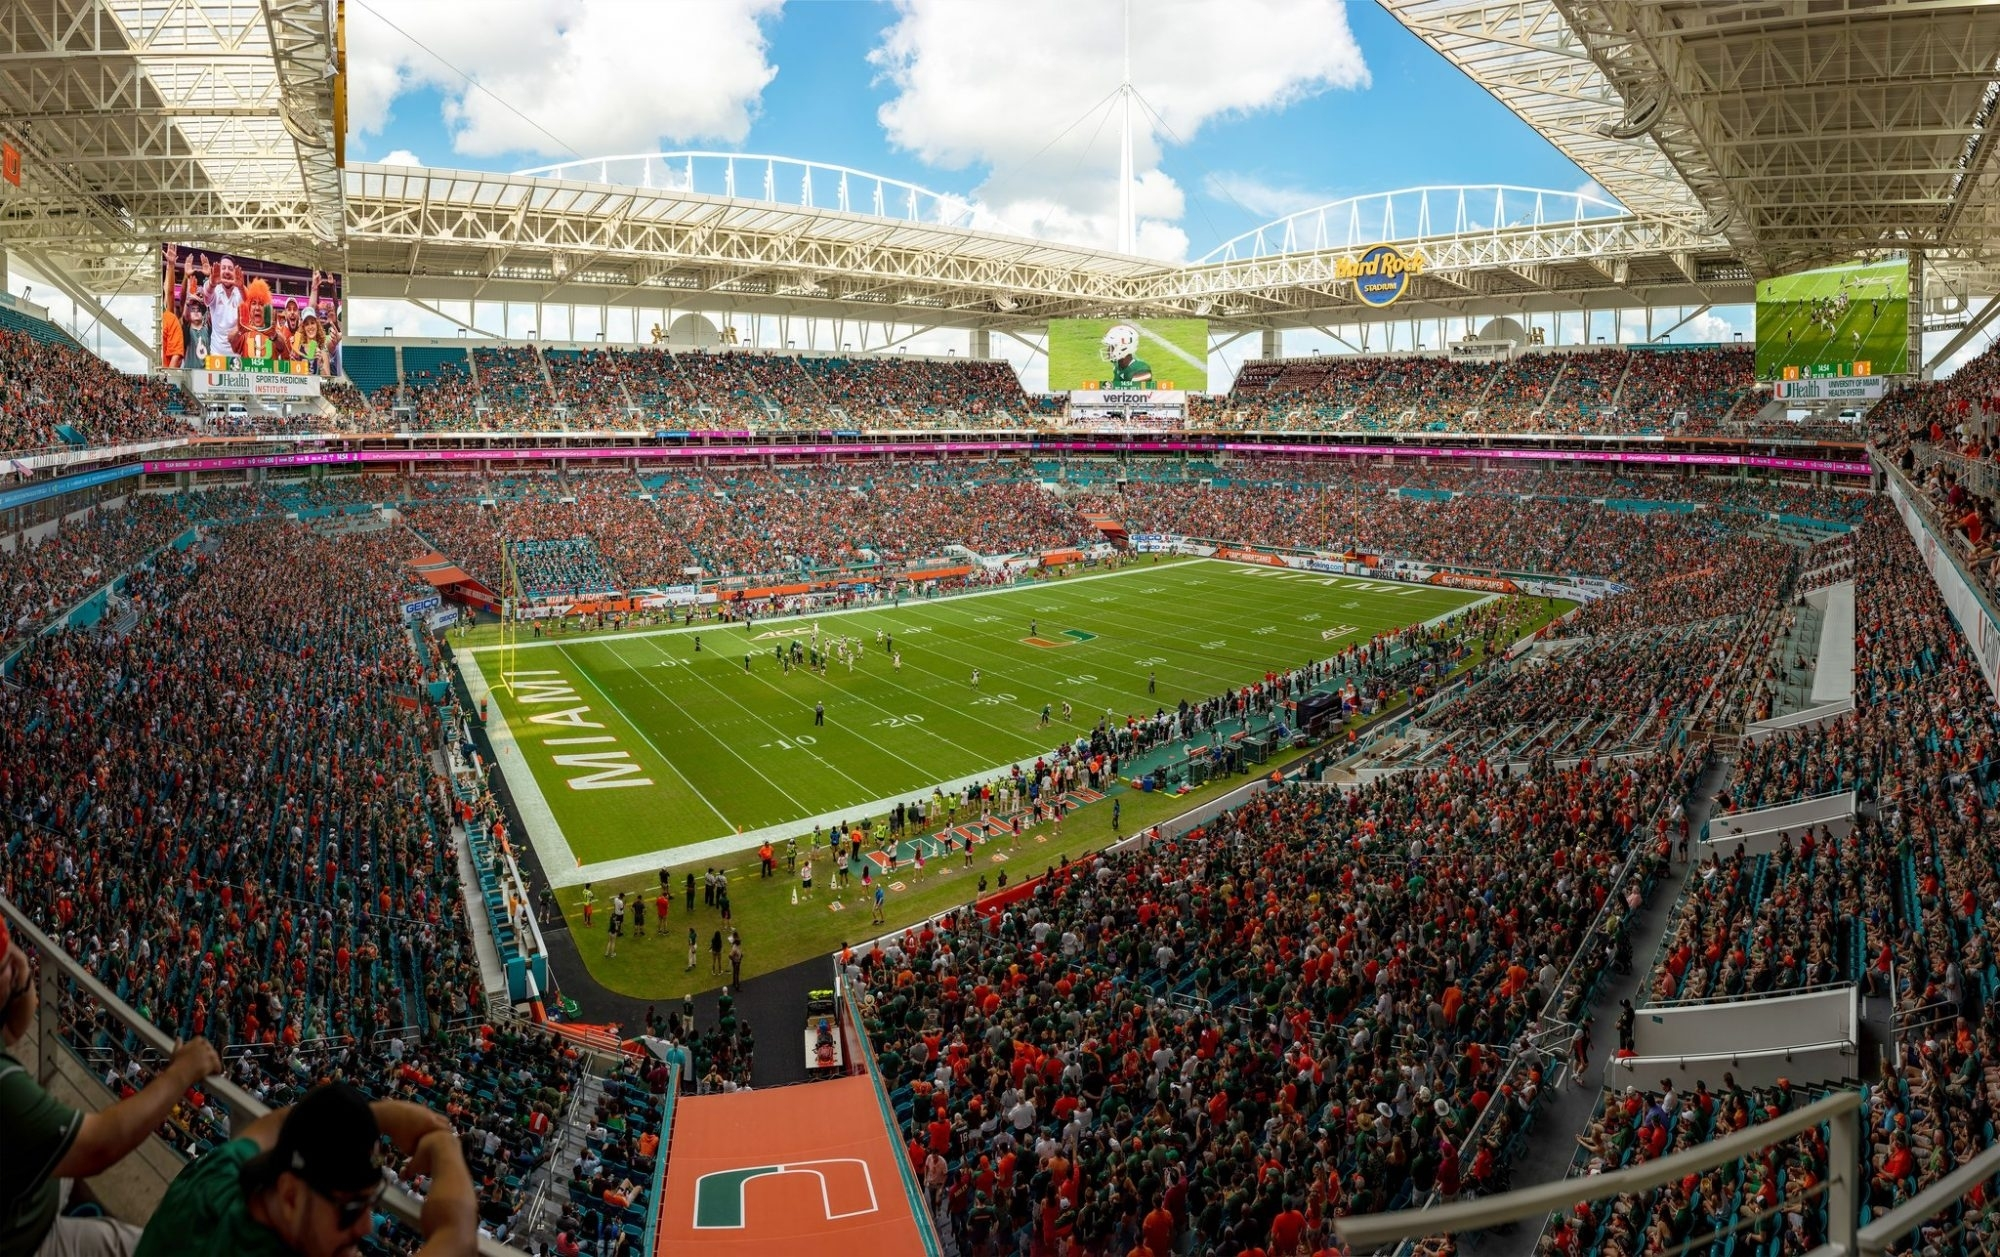 Super Bowl 2020 Packages From Australia: Tickets, Hotels with regard to Super Bowl 2020 Tickets